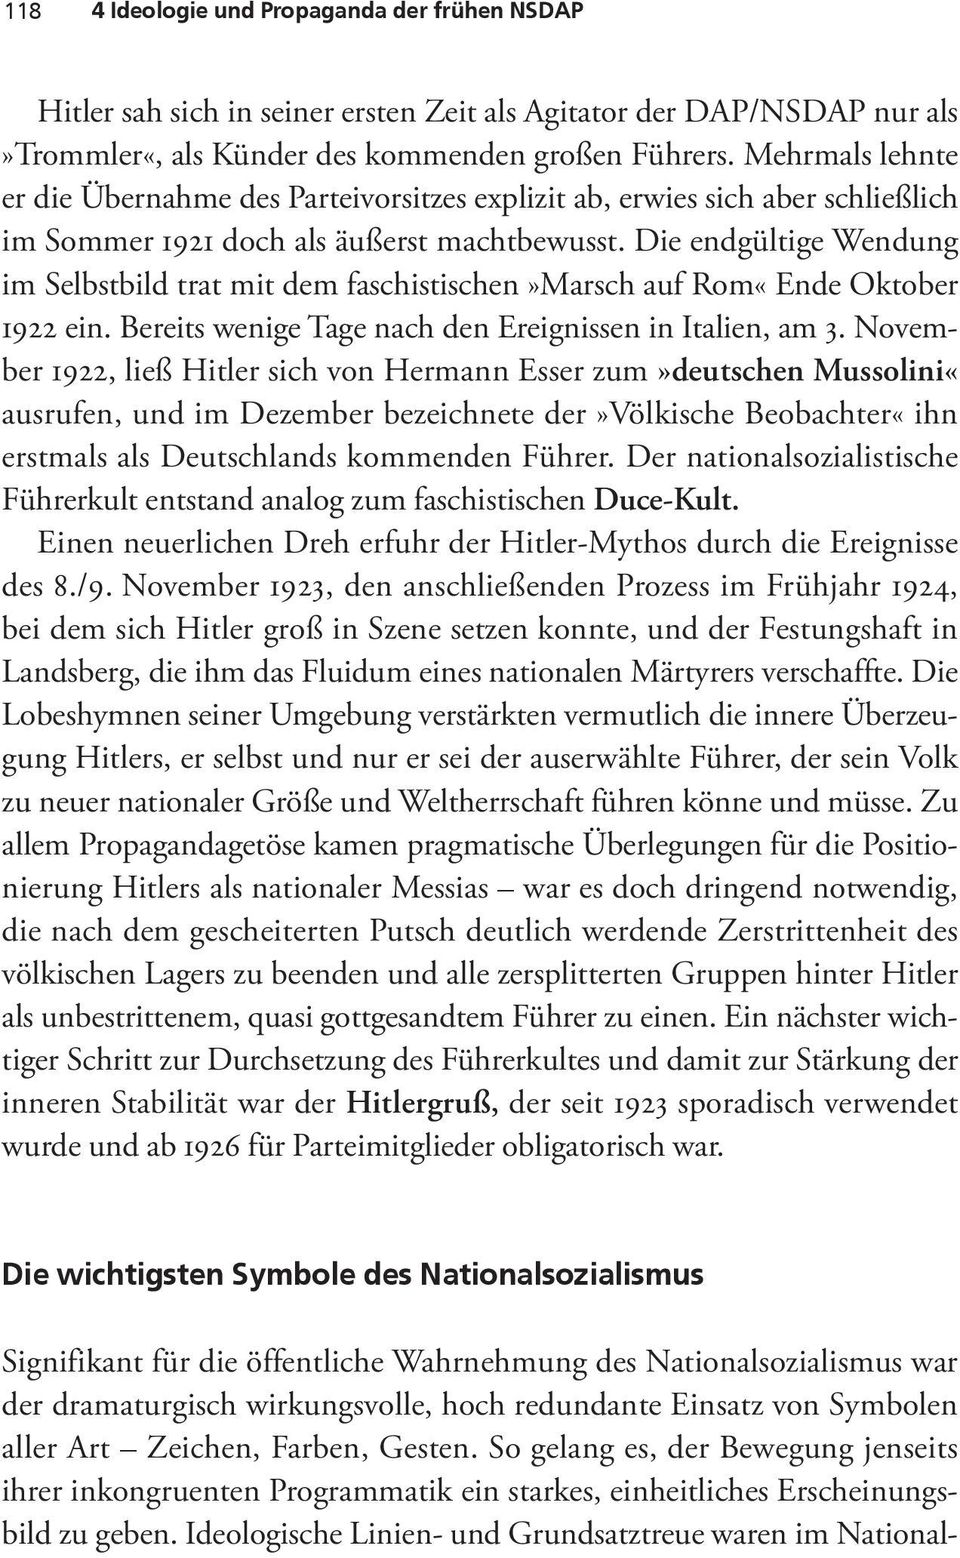 ideologie hitlers definition bedeutung